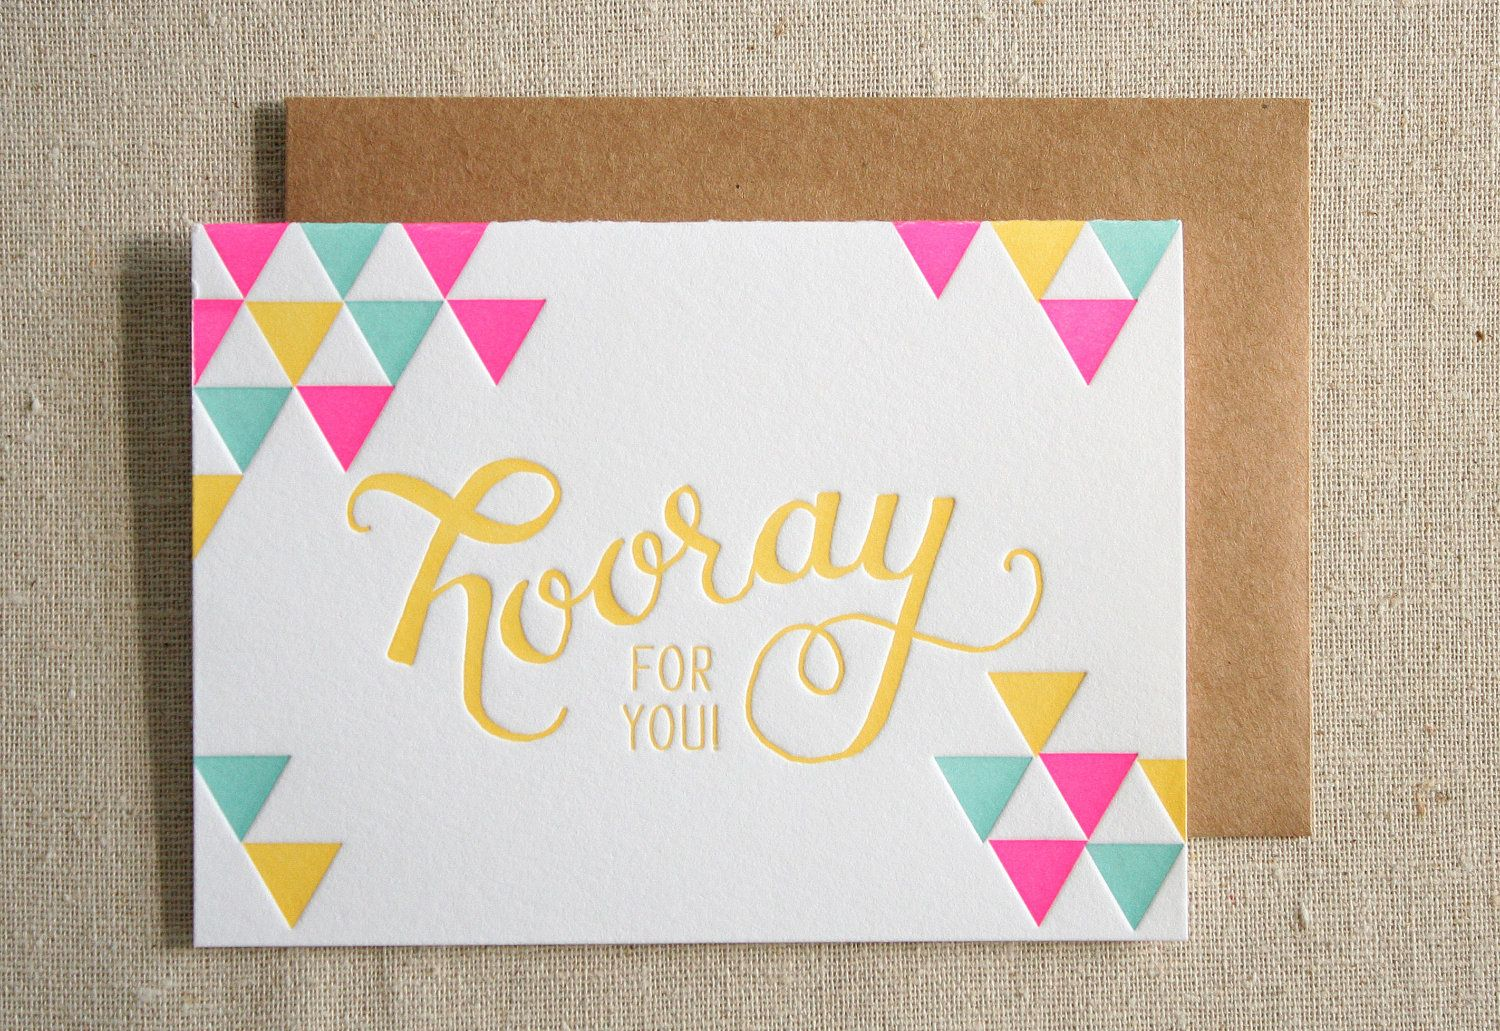 Hooray Letterpress Card. | Stationery | Pinterest | Tarjetas, Letras ...